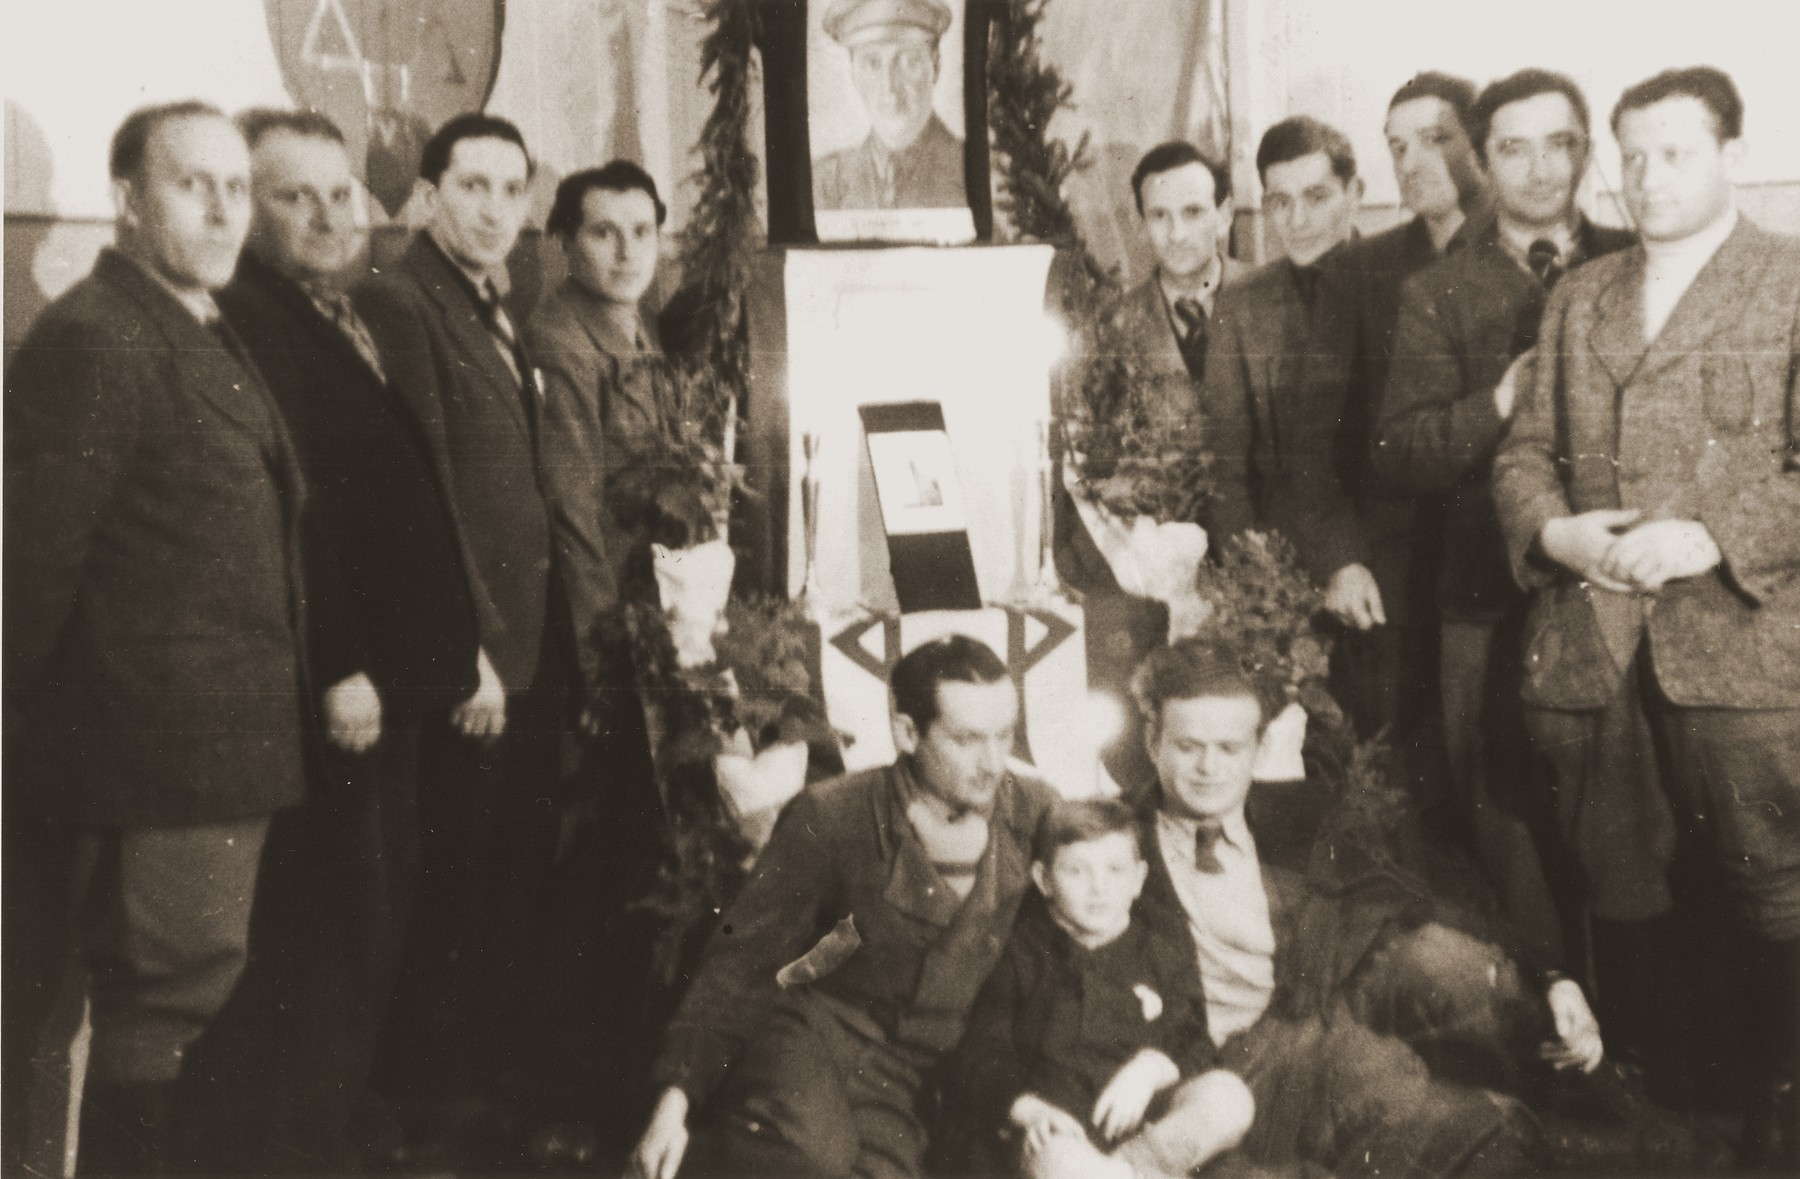 Group portrait of members of the Betar Zionist youth group in Fuerth alongside a portrait of Joseph Trumpeldor.  Among those pictured are Max Schatz, Leon Kreminitzer, Henryk Lanceter, and Jono Margulies.